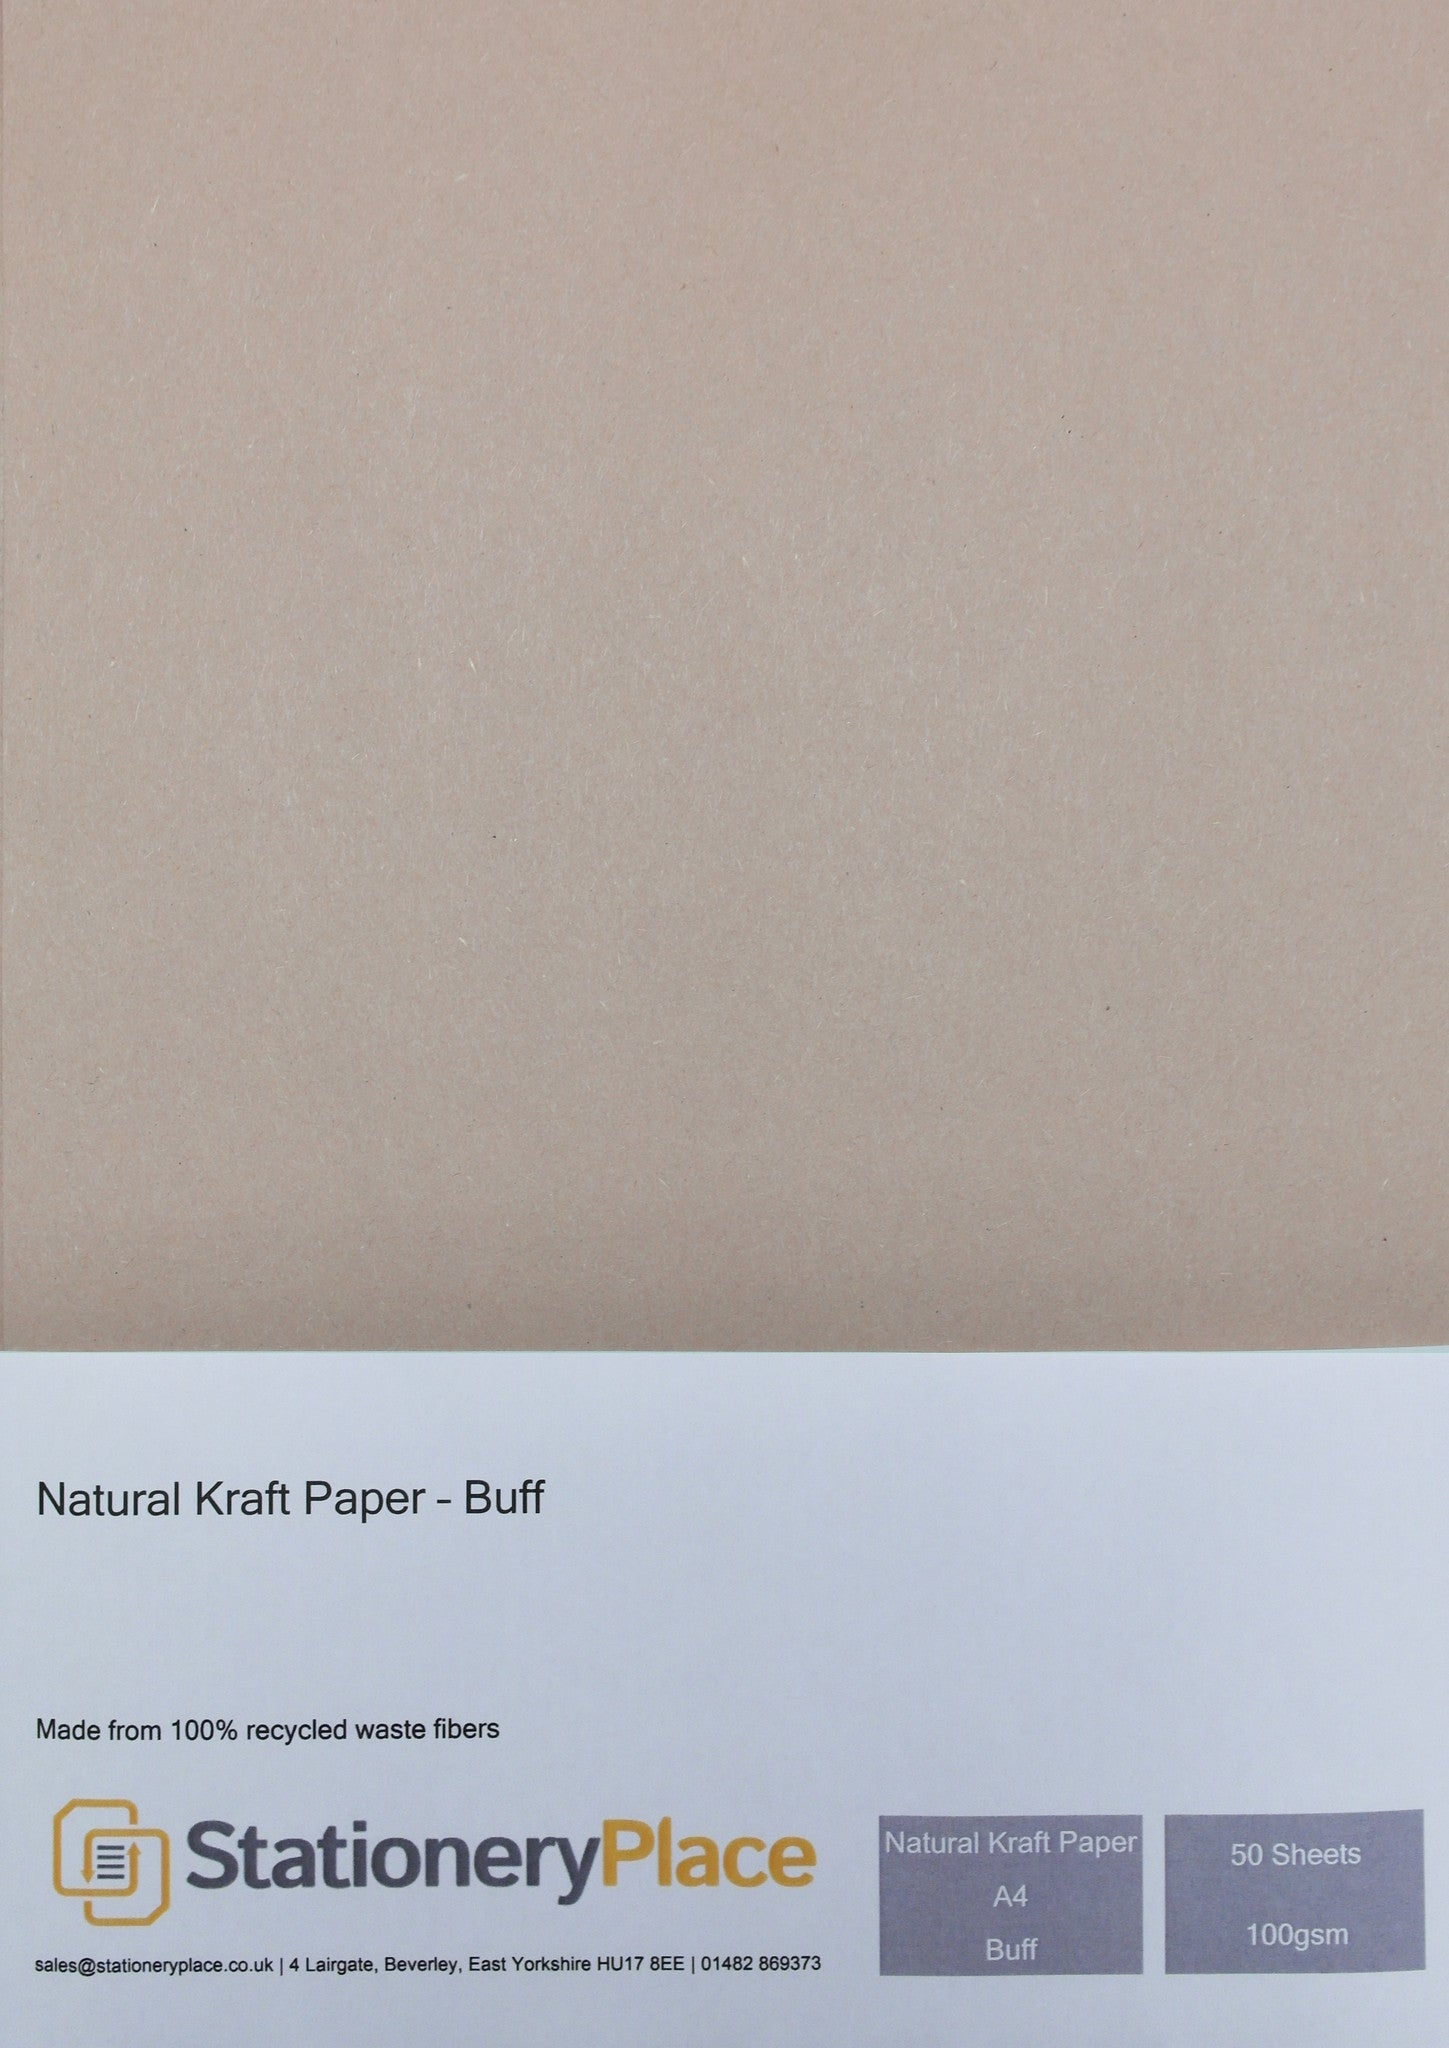 Recycled Eco Kraft Paper 100 GSM Buff A4 50 sheet pack